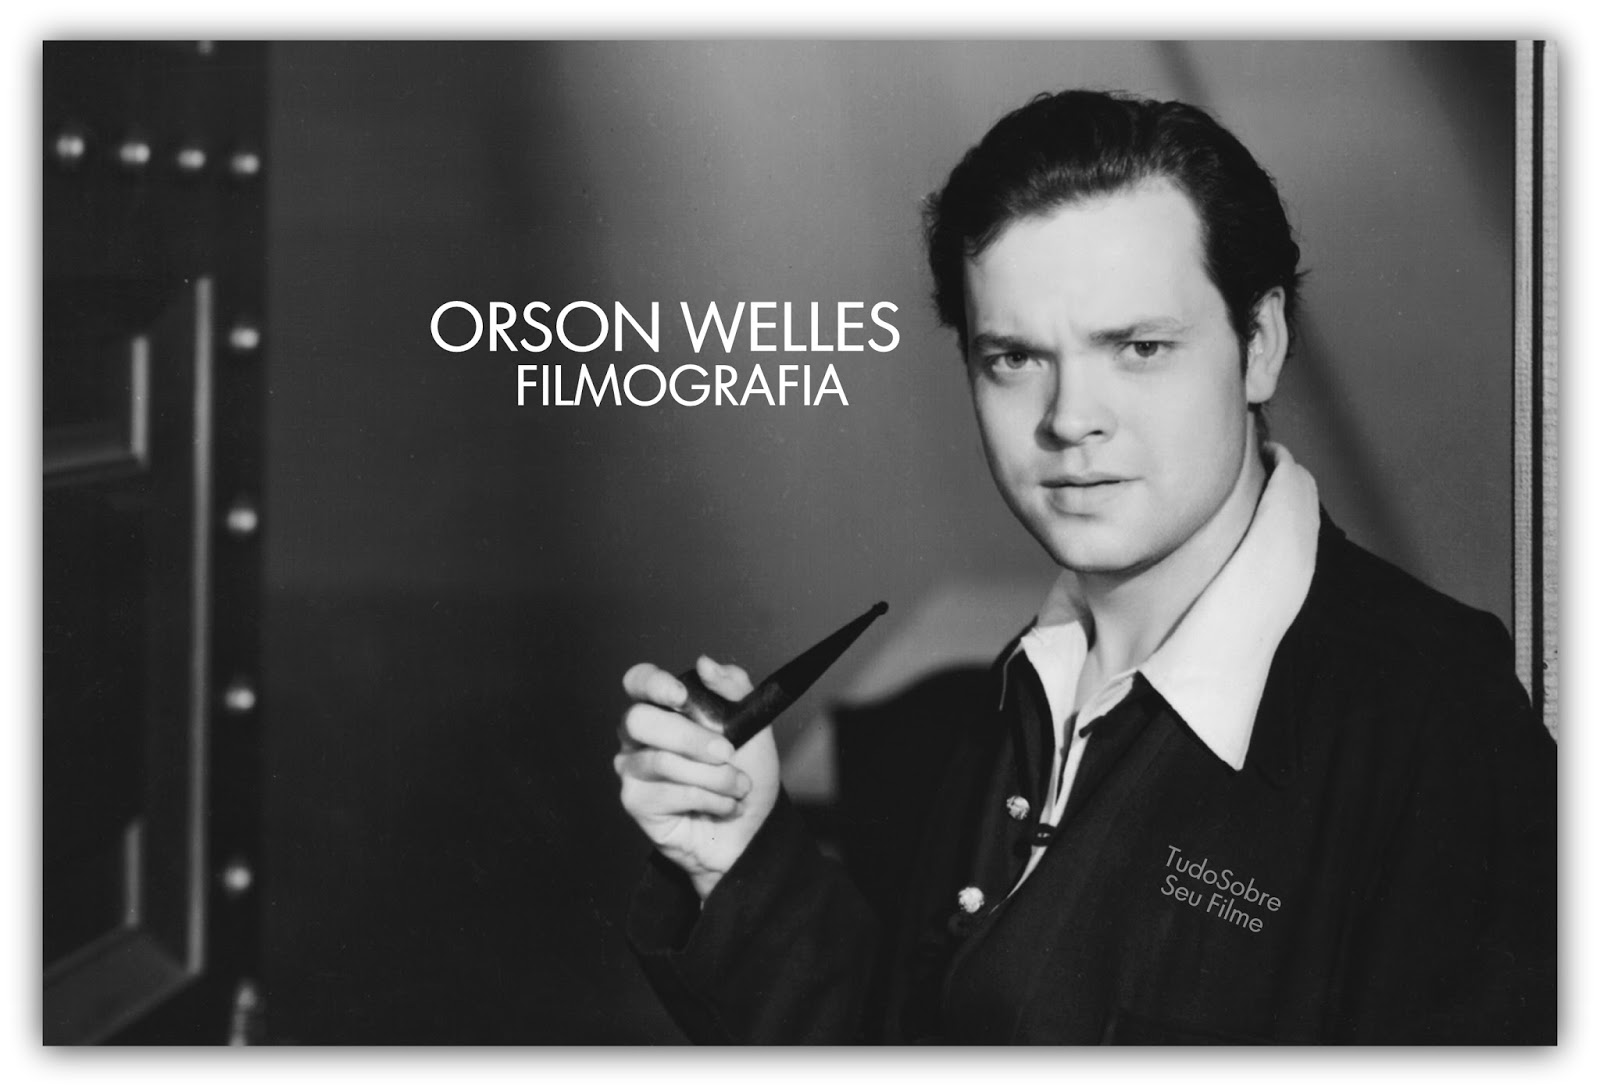 orson welles use of long shots A tracking shot is when a camera follows a person or an object physicallyy moving with the subject- this can be done using tracks, handheld, ropes, steady-cam etc long tracking shots impress me a lot as it takes a lot of planning and rehearsals to get it just right but if you do it can be the most.